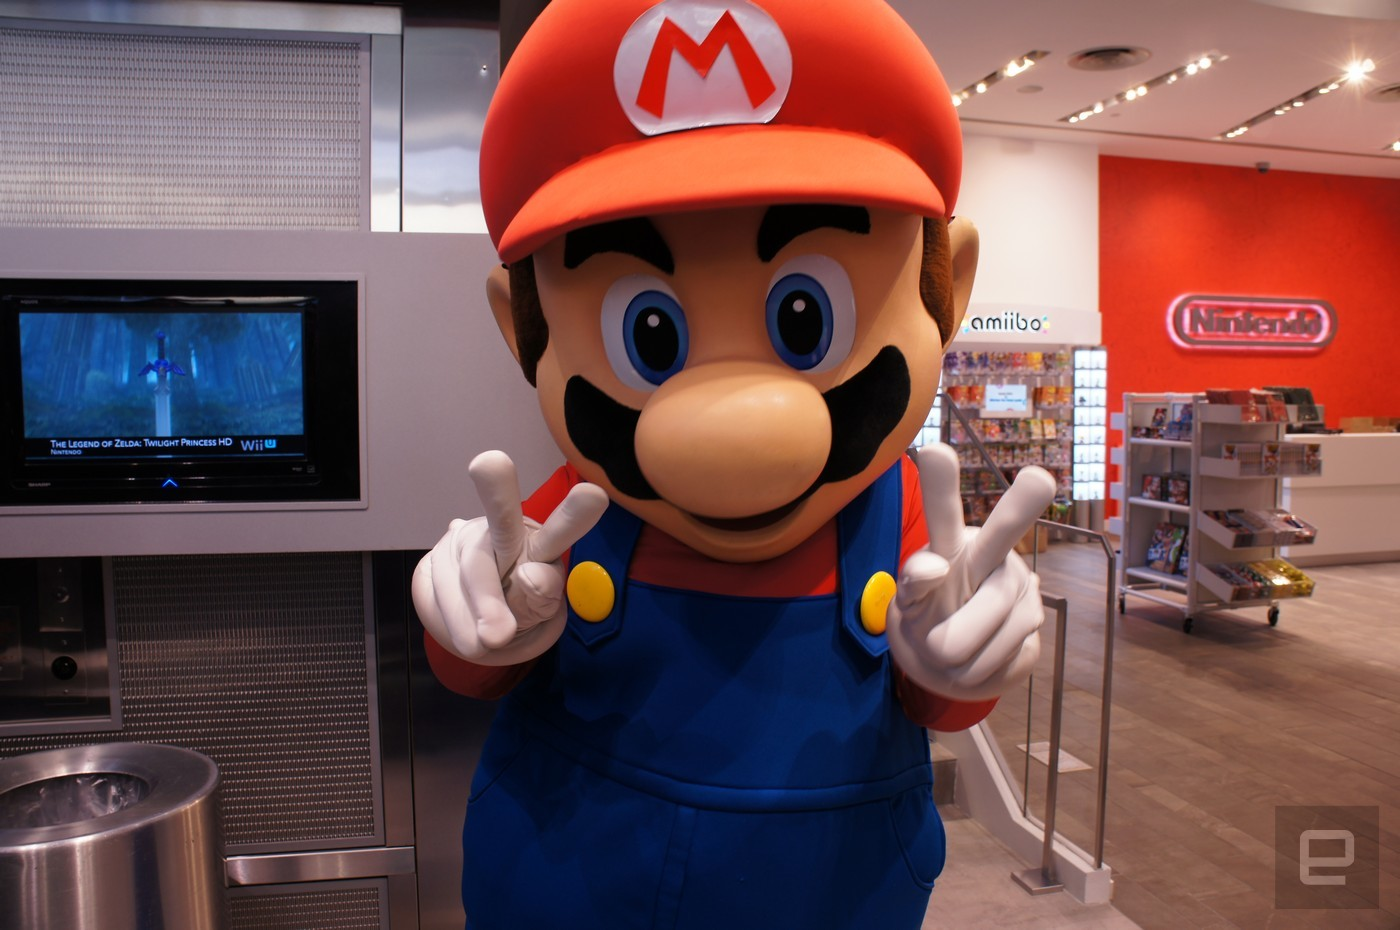 You can try to pre-order the Nintendo Switch in NYC on Friday